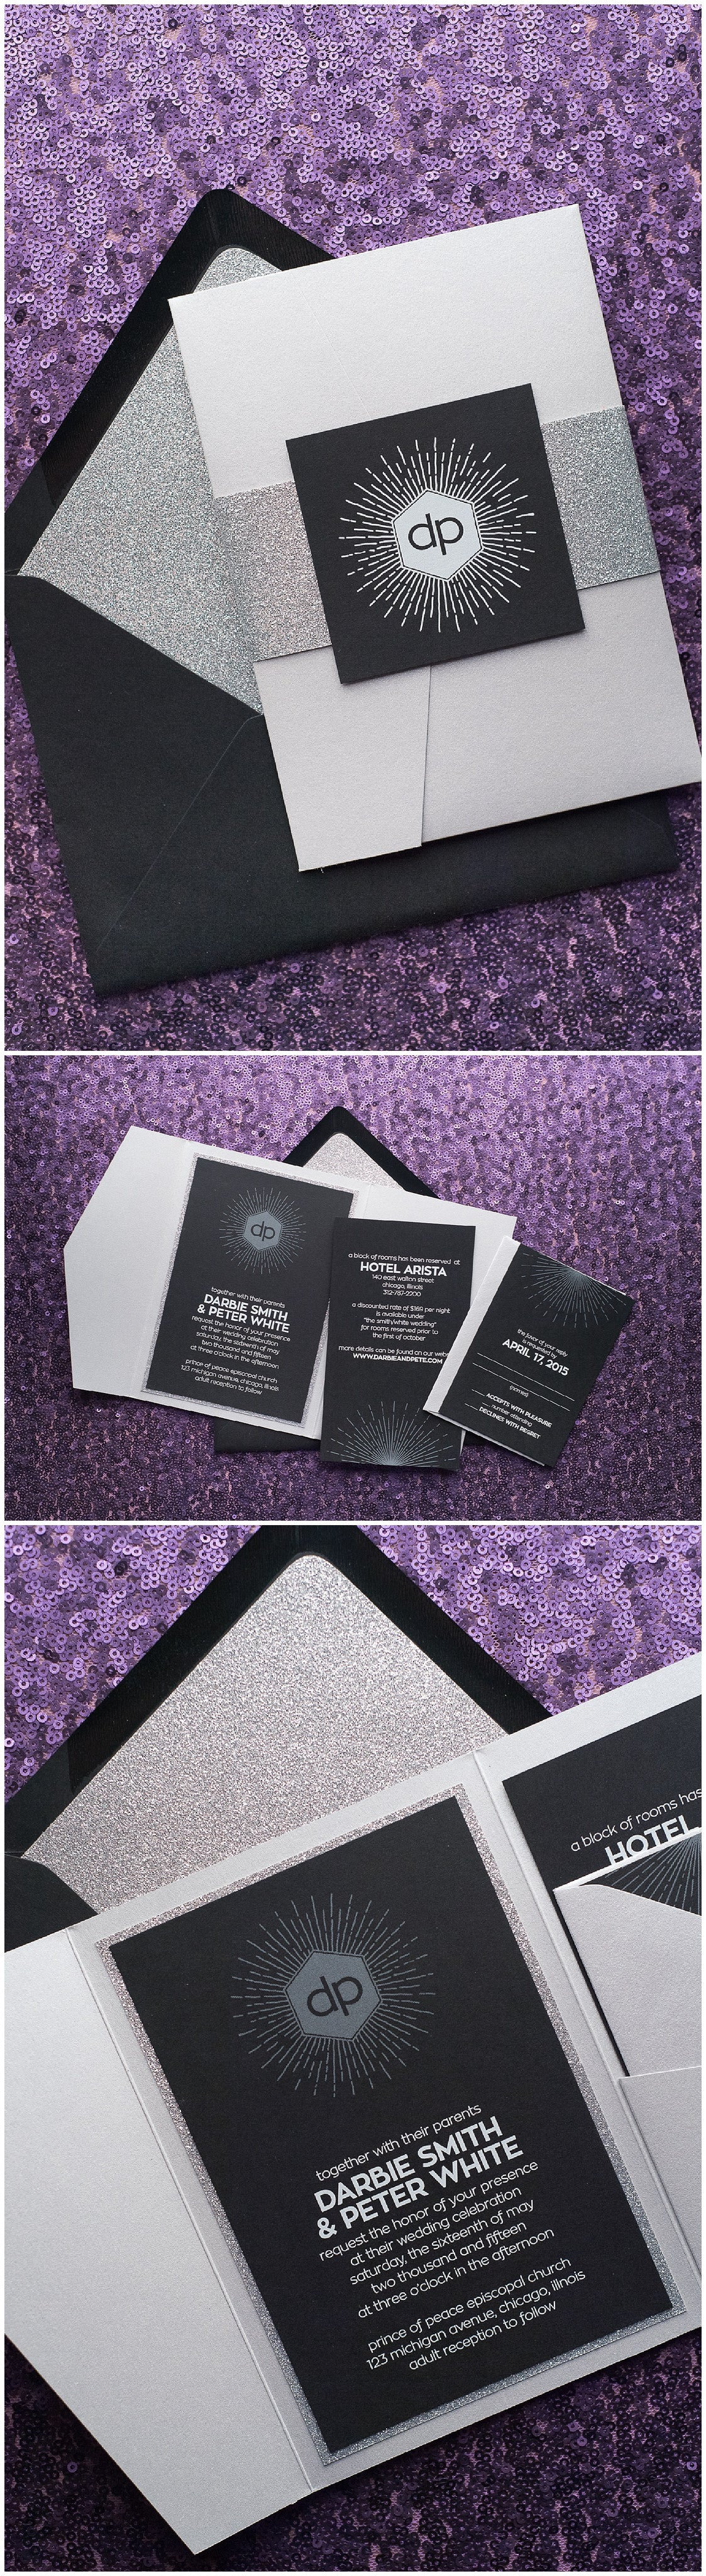 Wedding Invitations, Black and Silver, White Ink, Digital Printing, Pocket Folder, Darbie Suite, Just Invite Me